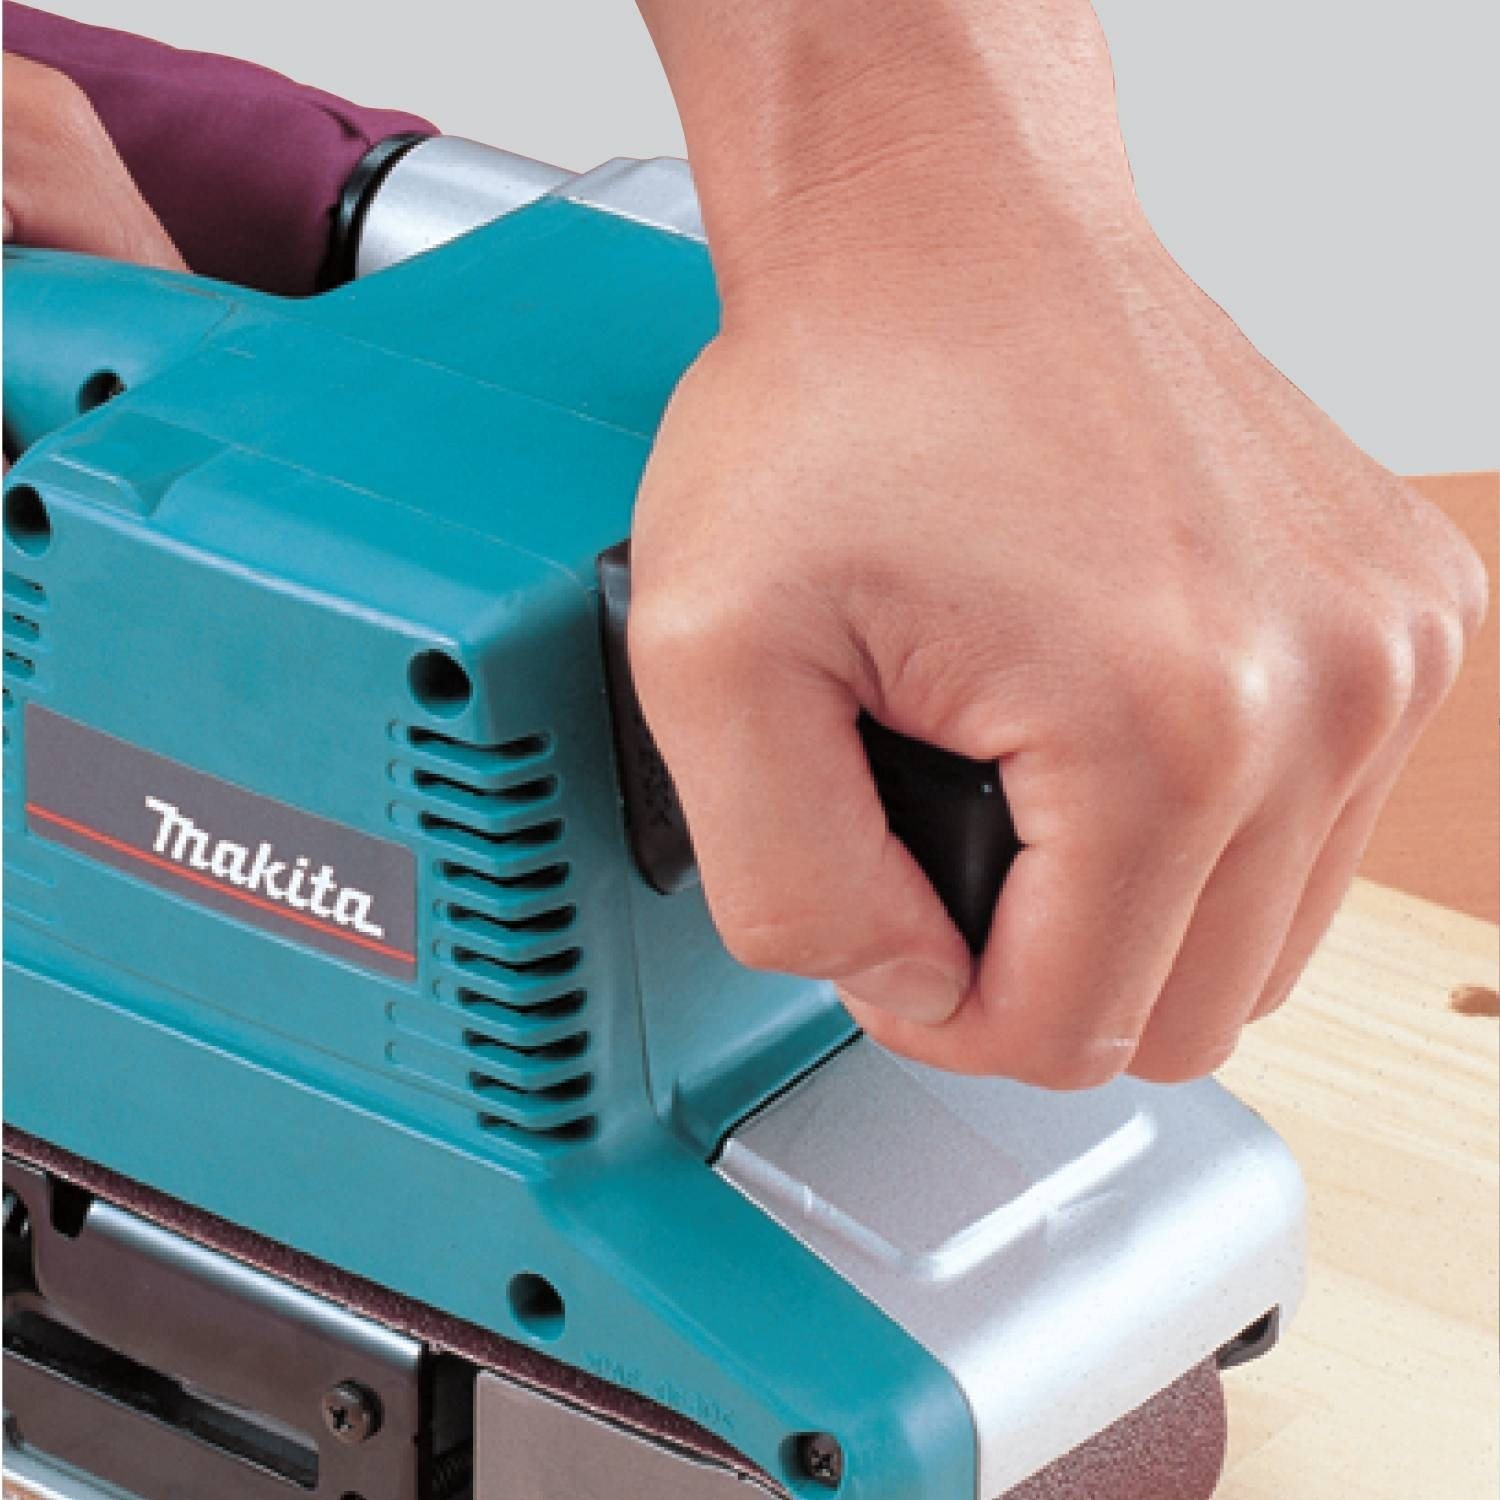 Makita 9903 Belt Sanders product image 5